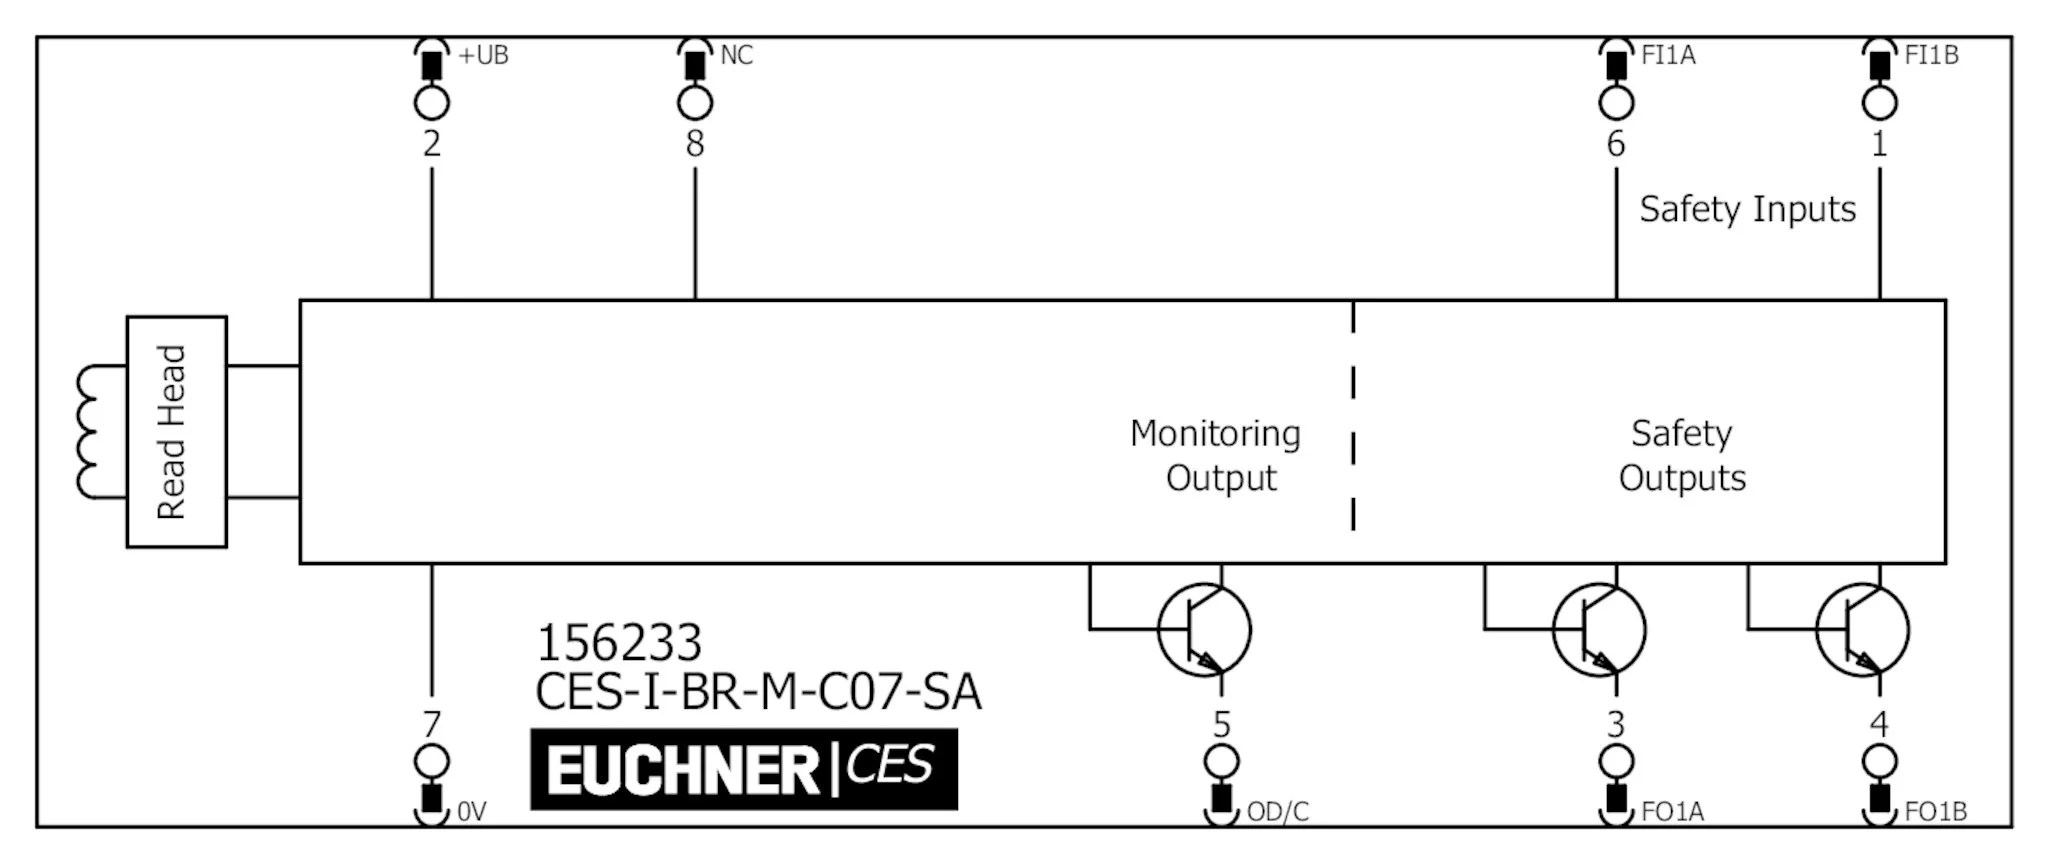 Ces I Br M C07 Sa Non Contact Safety Switches Ces I